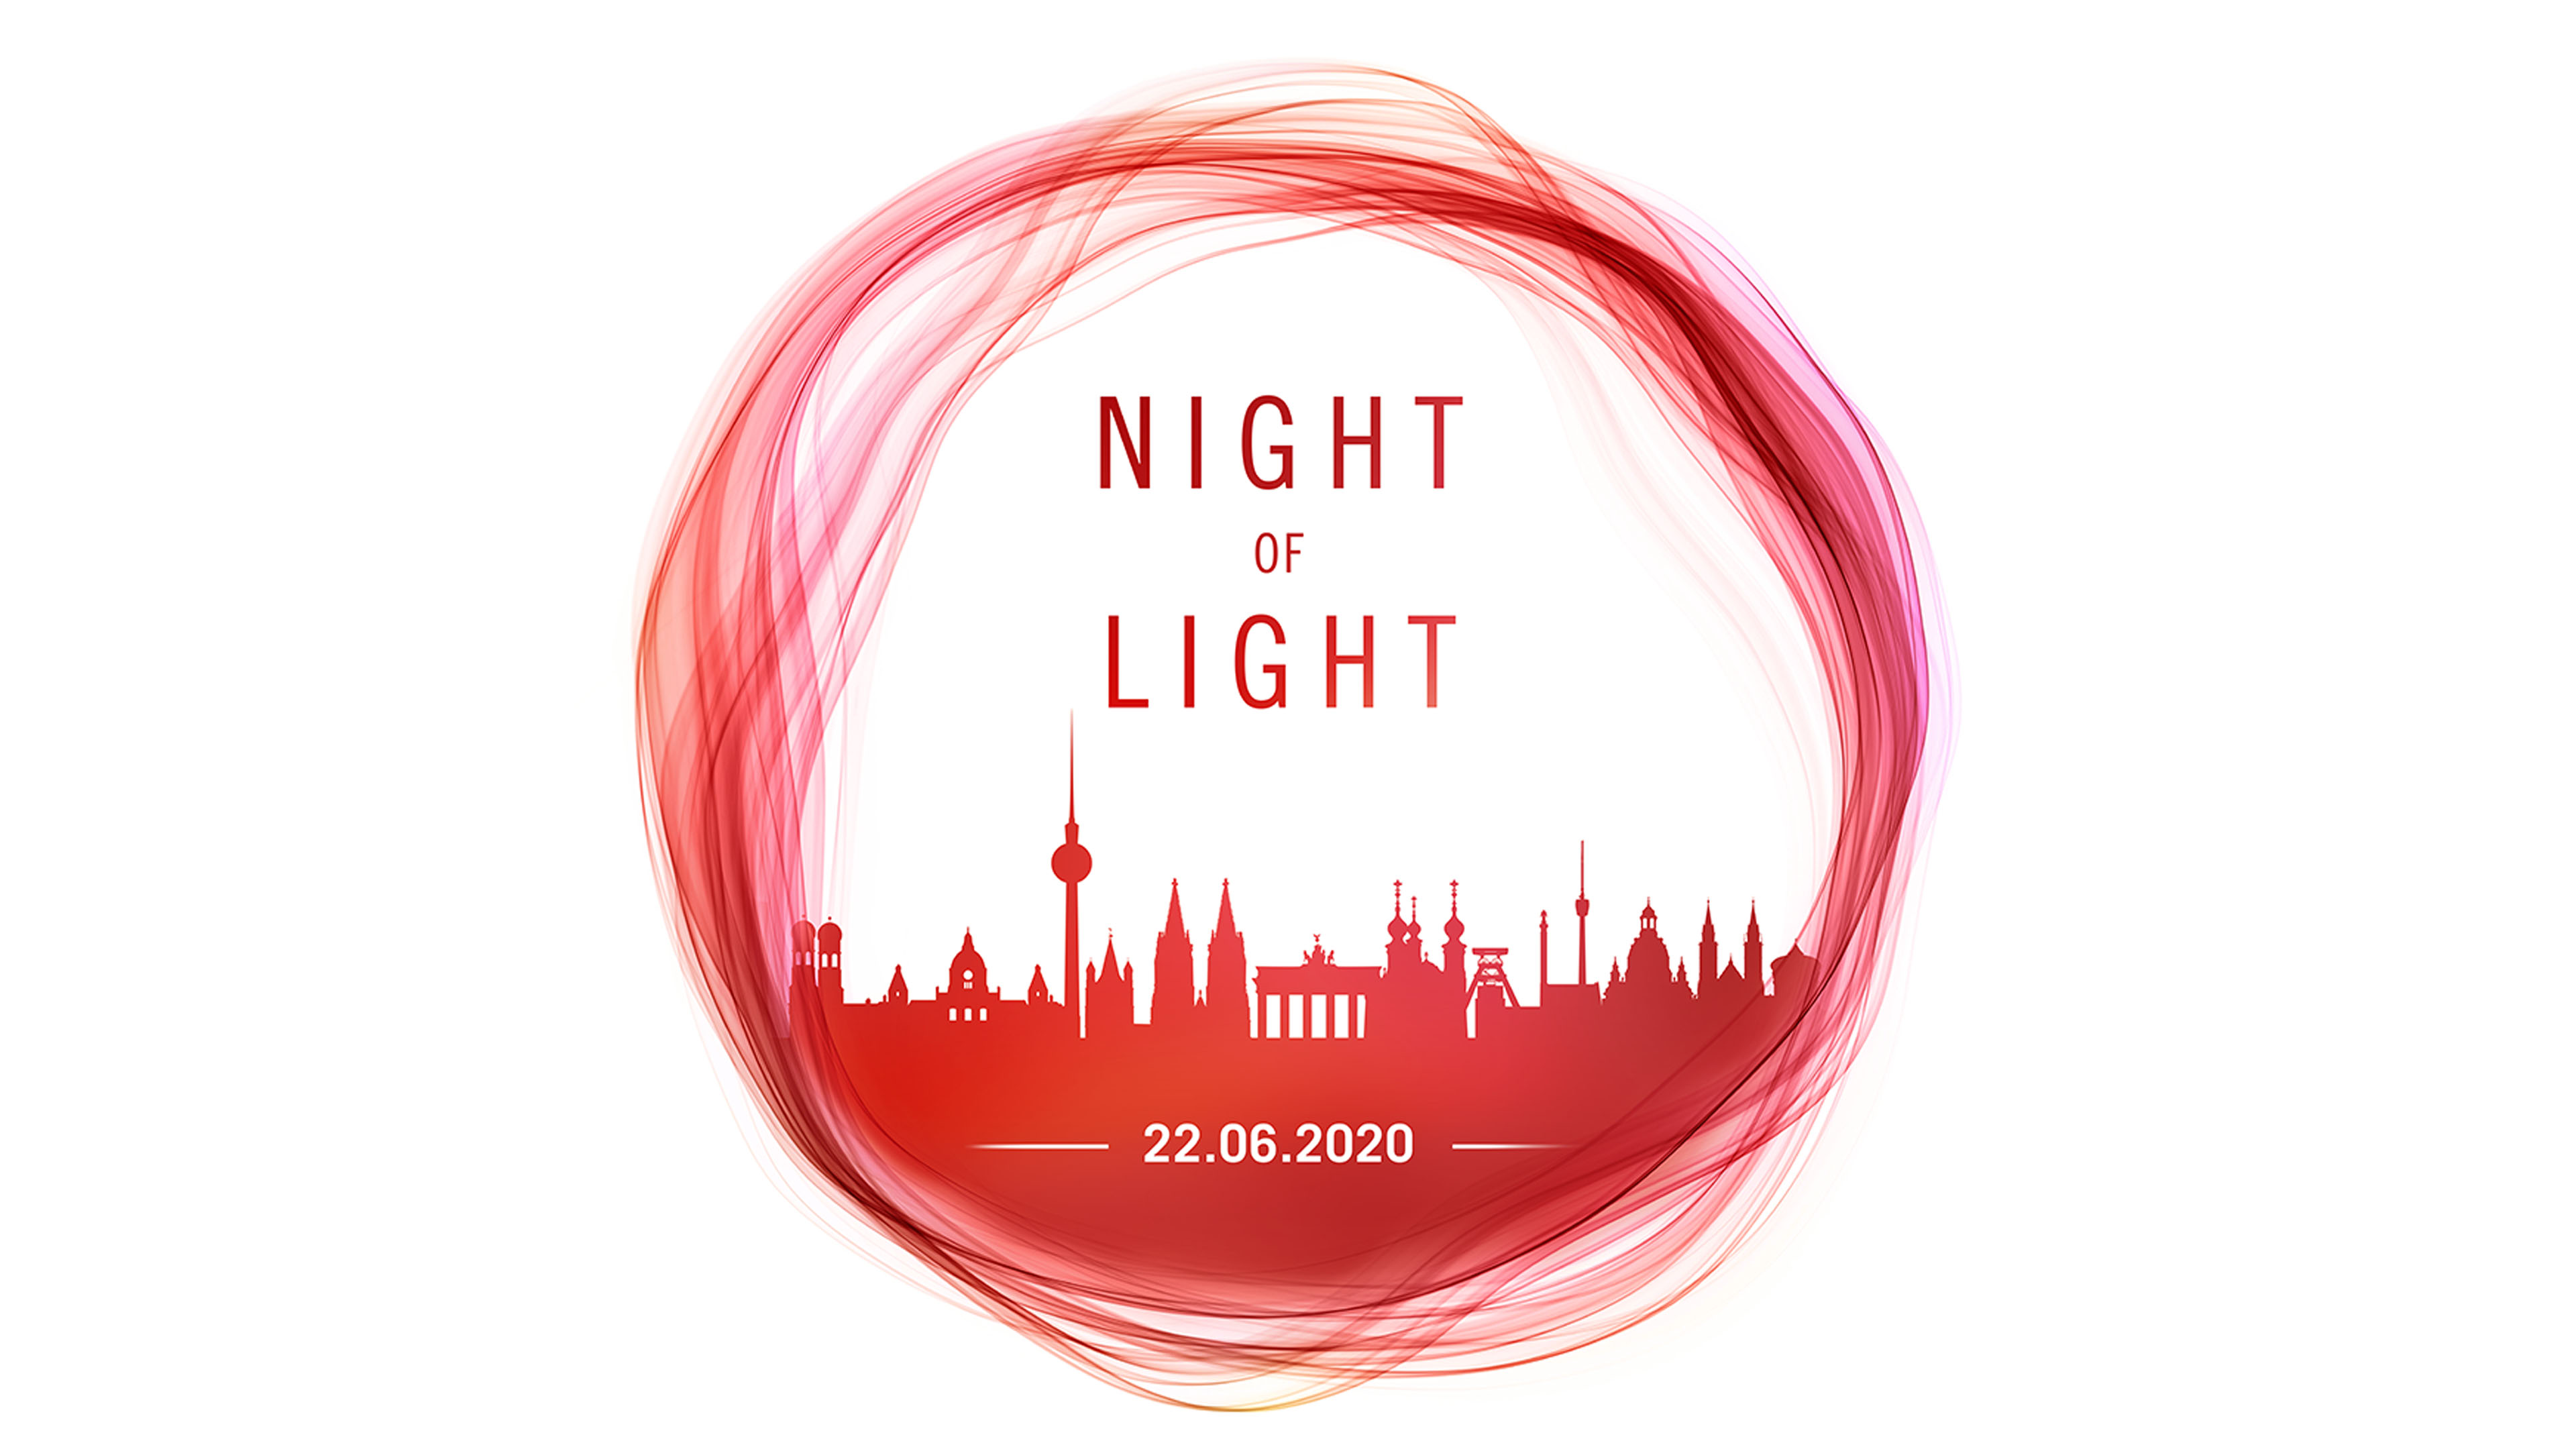 Night of Light – Gerlingen macht mit!